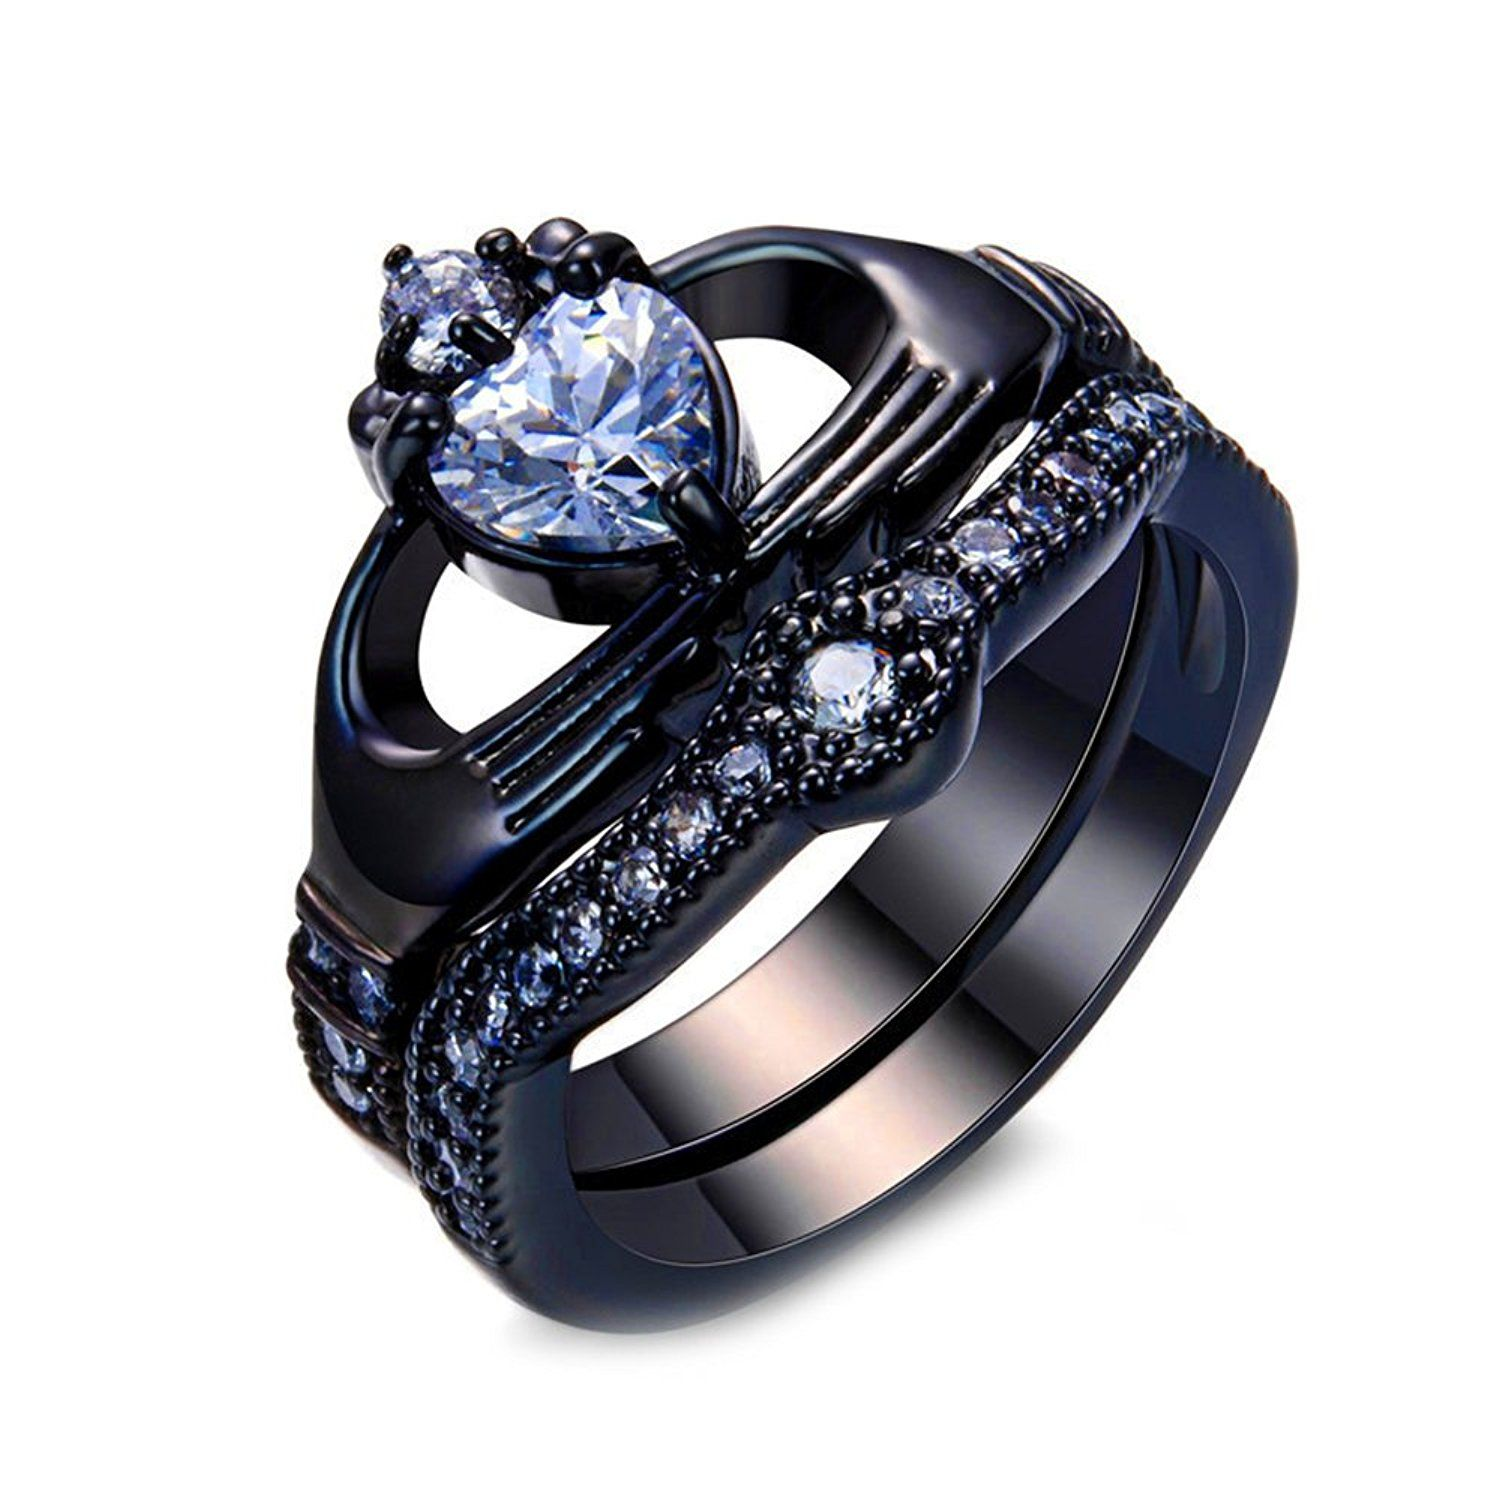 Wedding Website Url Ideas: FandF Ring White Heart Zircon Ring Sets Vintage Jewelry